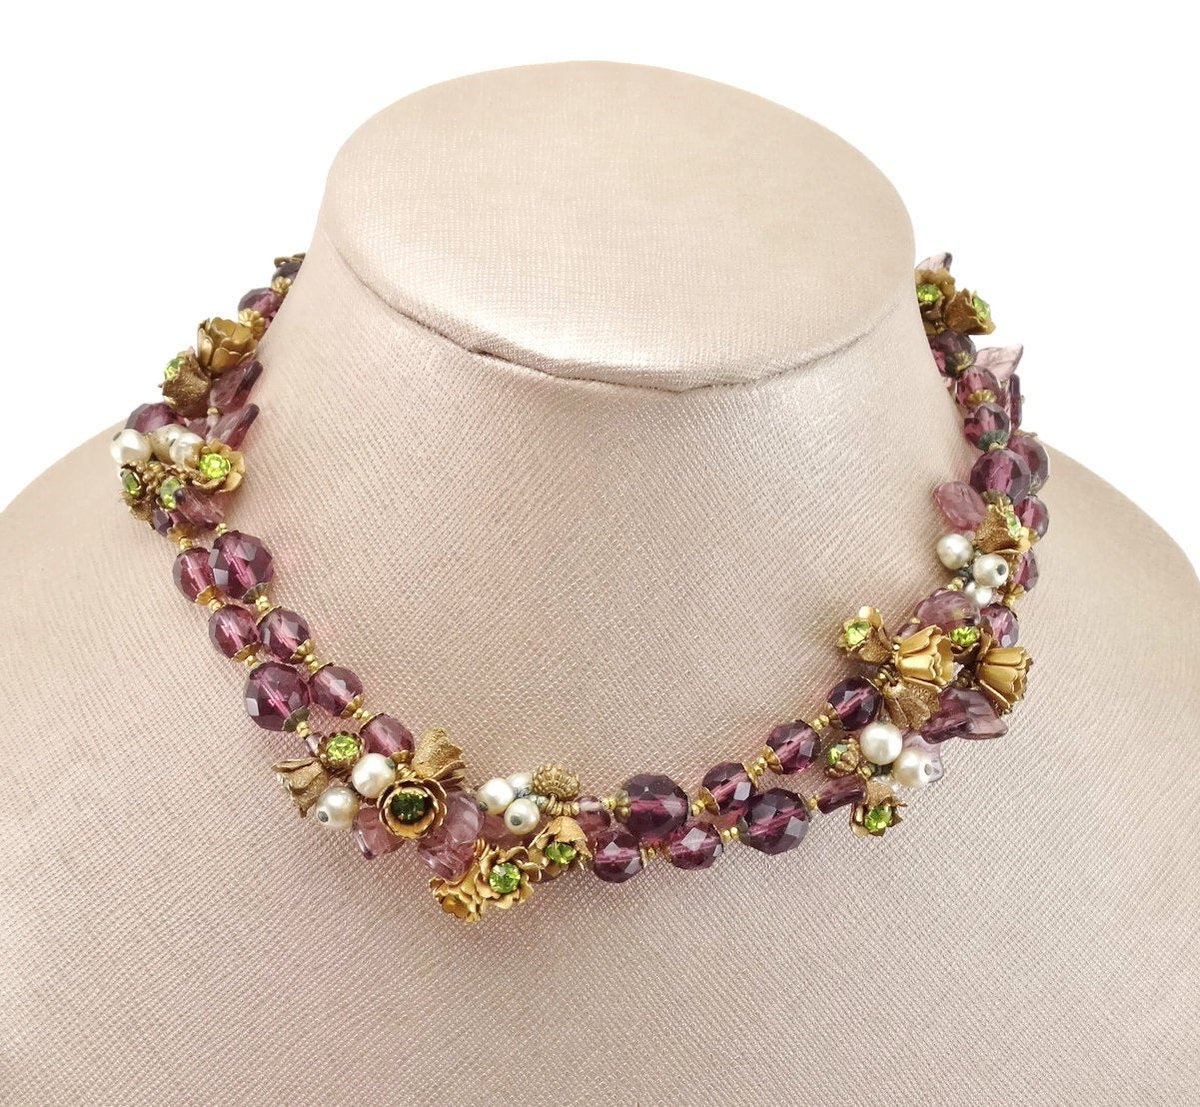 Vintage Early MIRIAM HASKELL Amethyst Gripoix Glass, Gilt Metal Roses, Glass Leaves, Rhinestone Necklace #designer #amethystnecklace #vintageroses #miriamhaskell